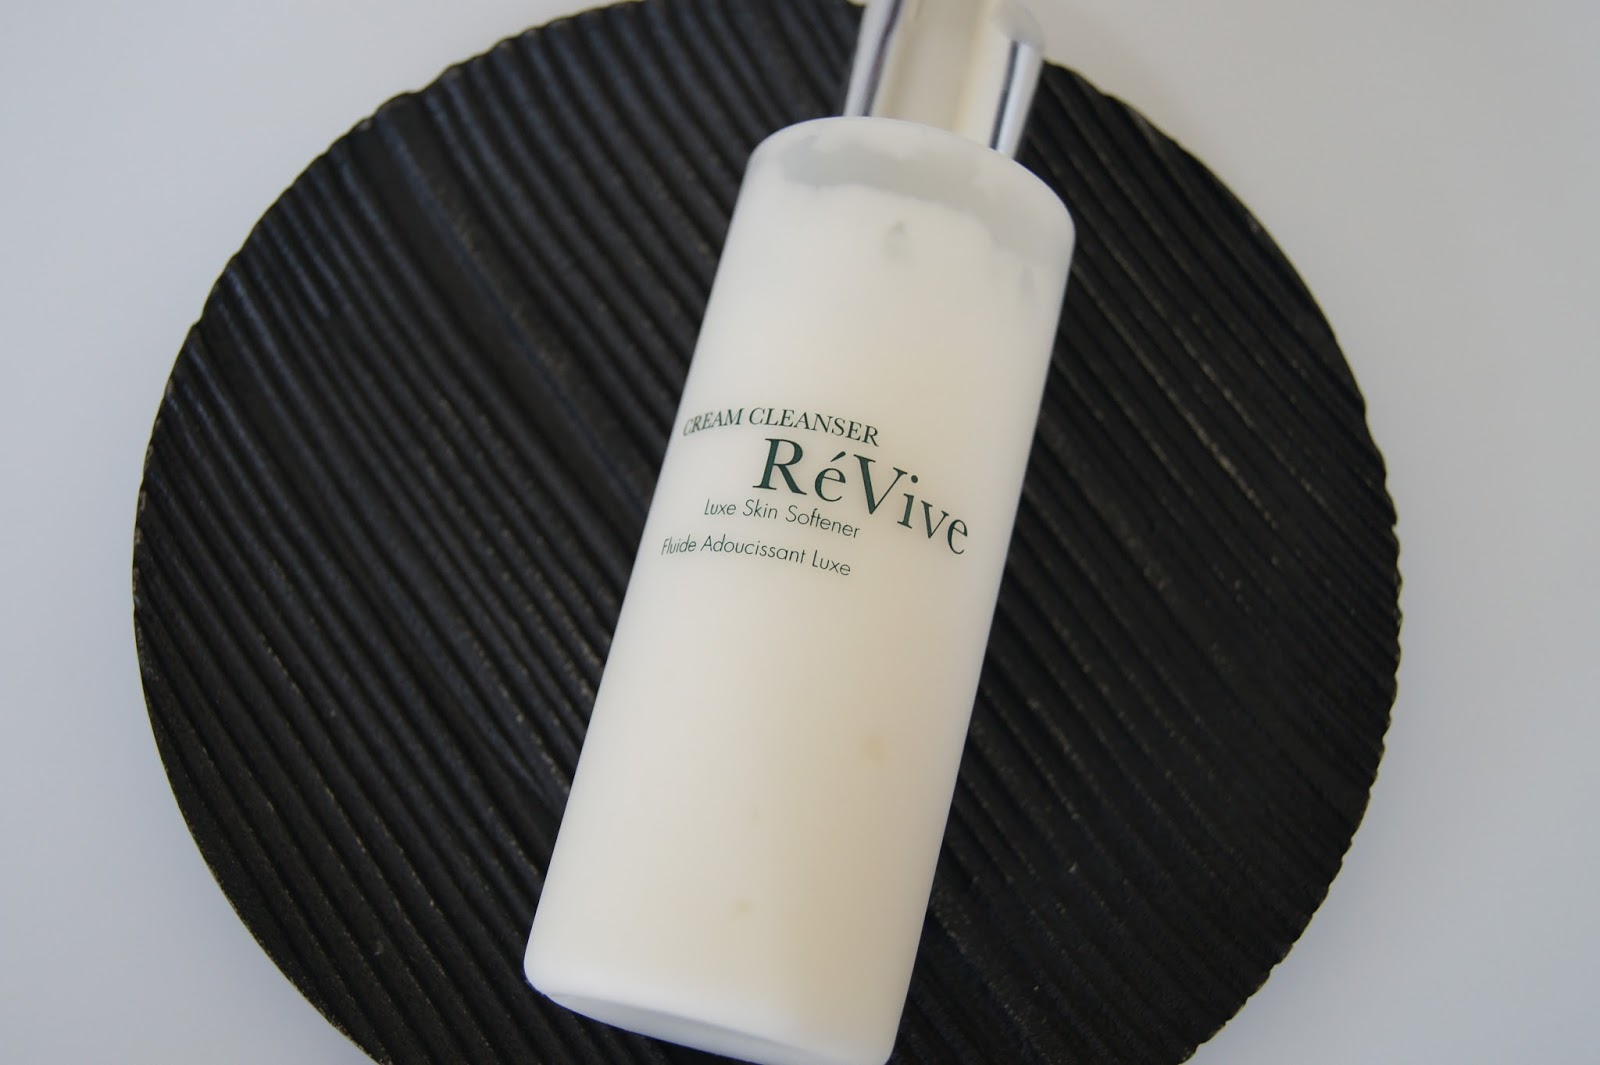 Revive cream cleanser review